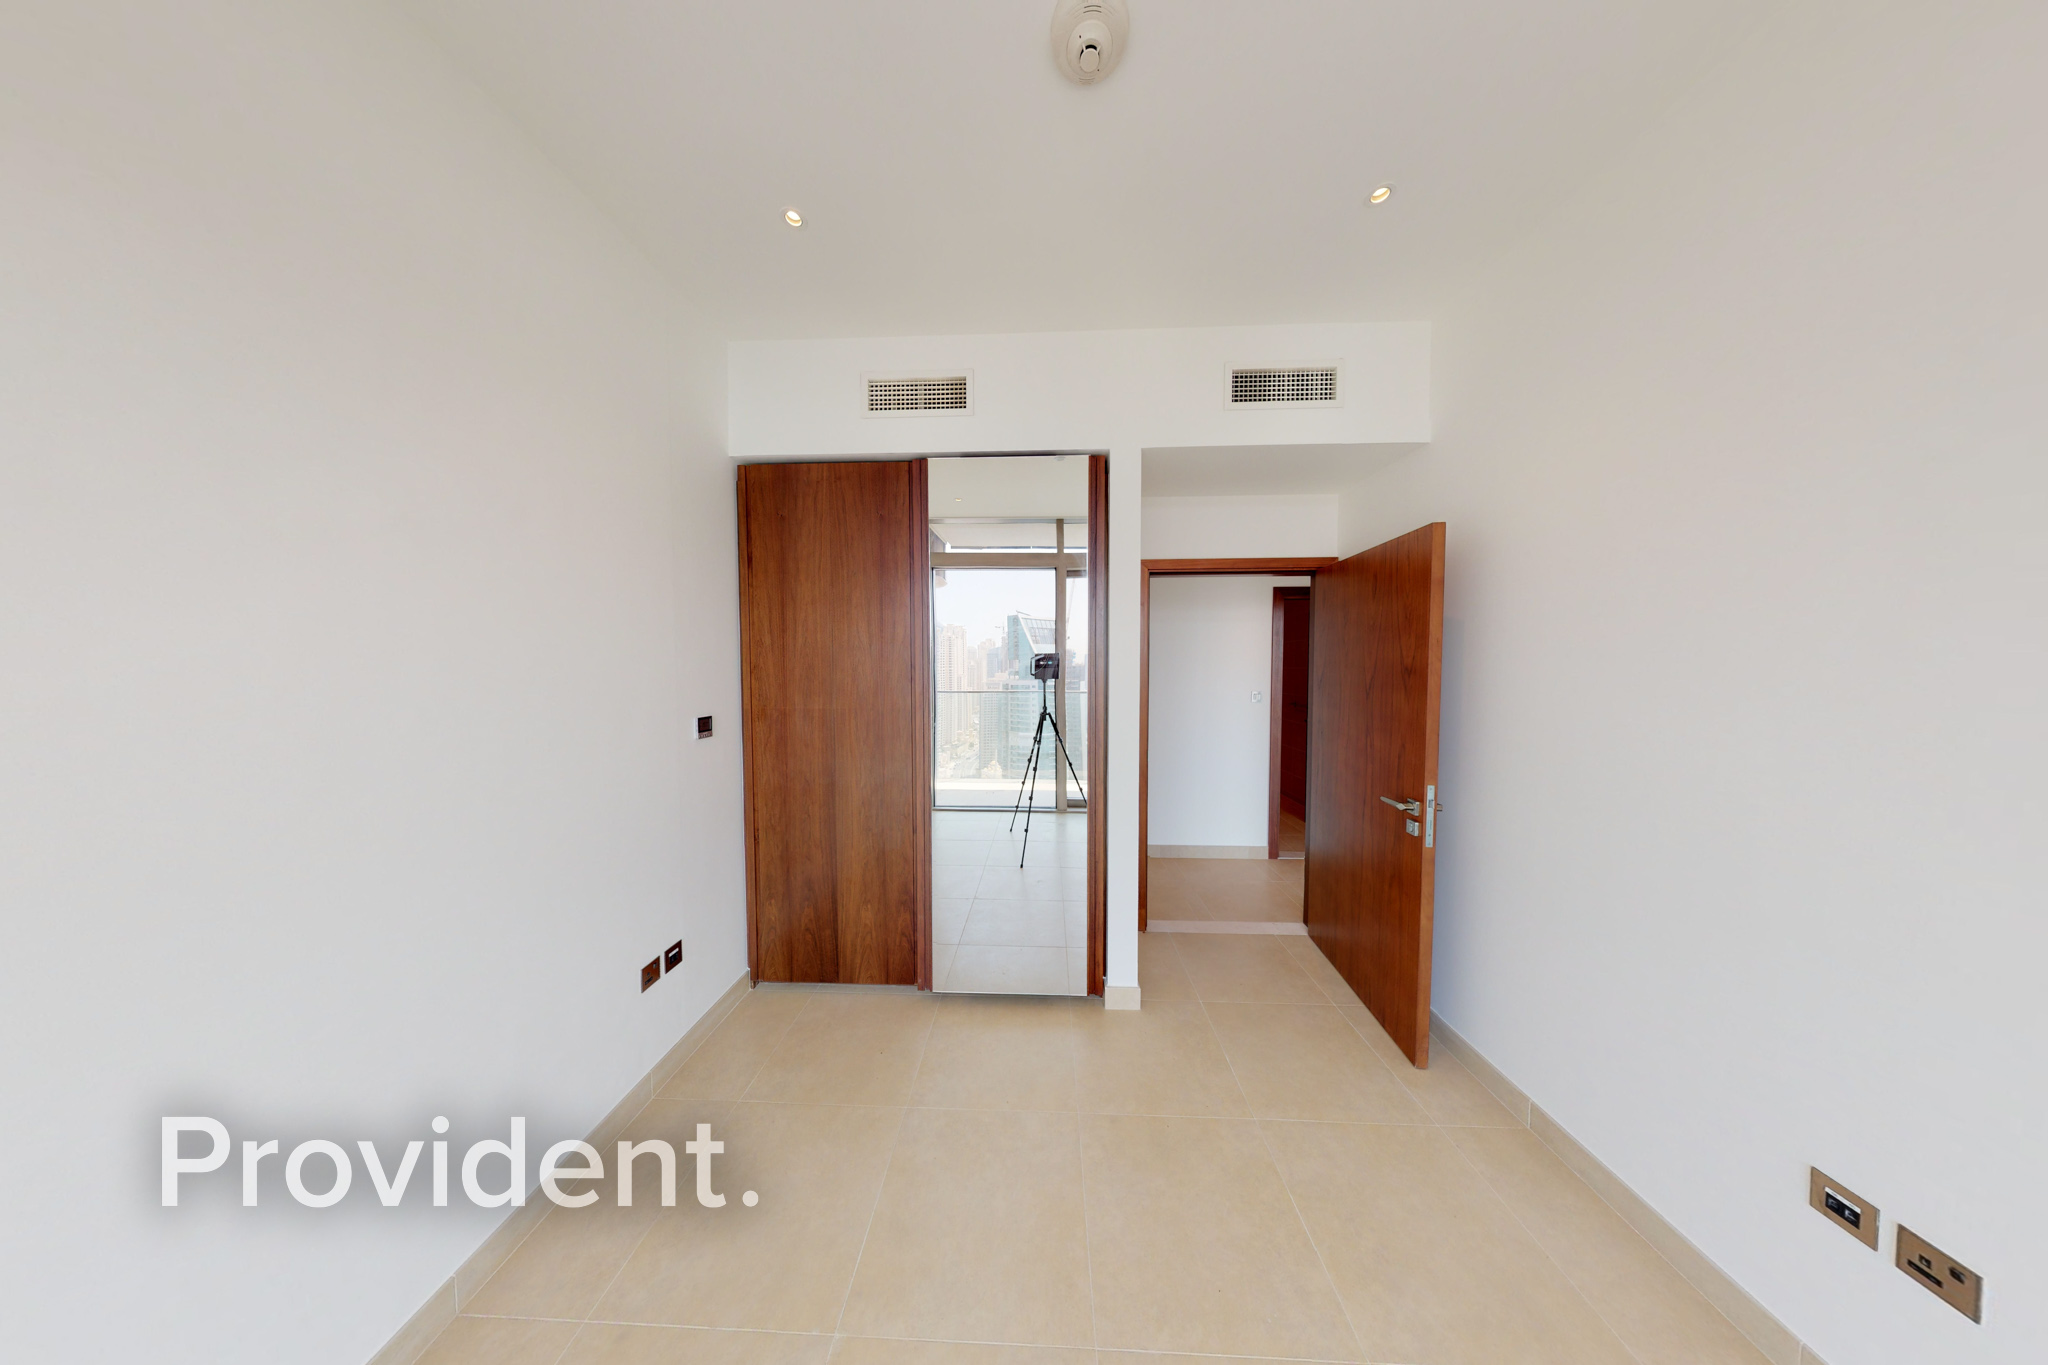 3BR Center Unit | Full Marina View | Move In Ready